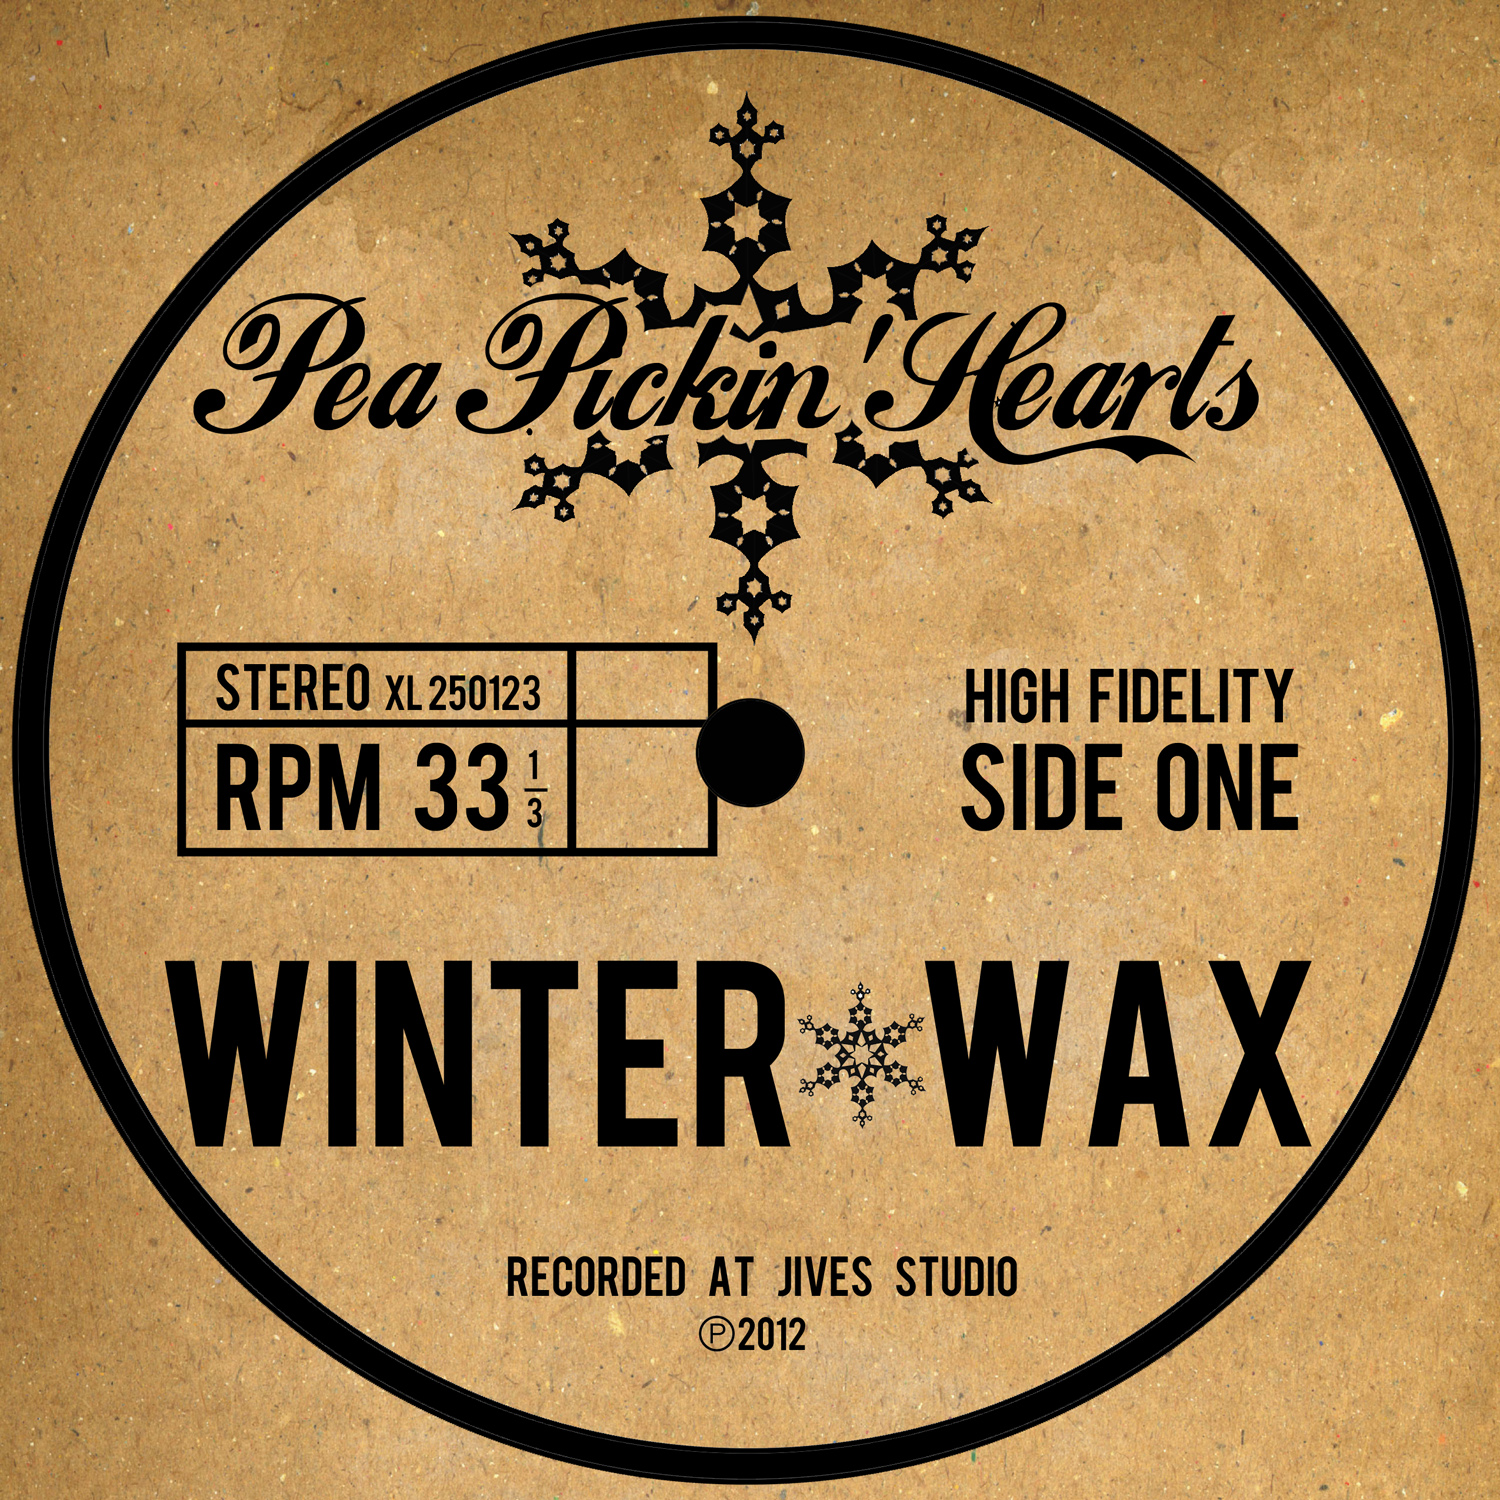 Winter Wax CD, a holiday album from the Pea Pickin' Hearts